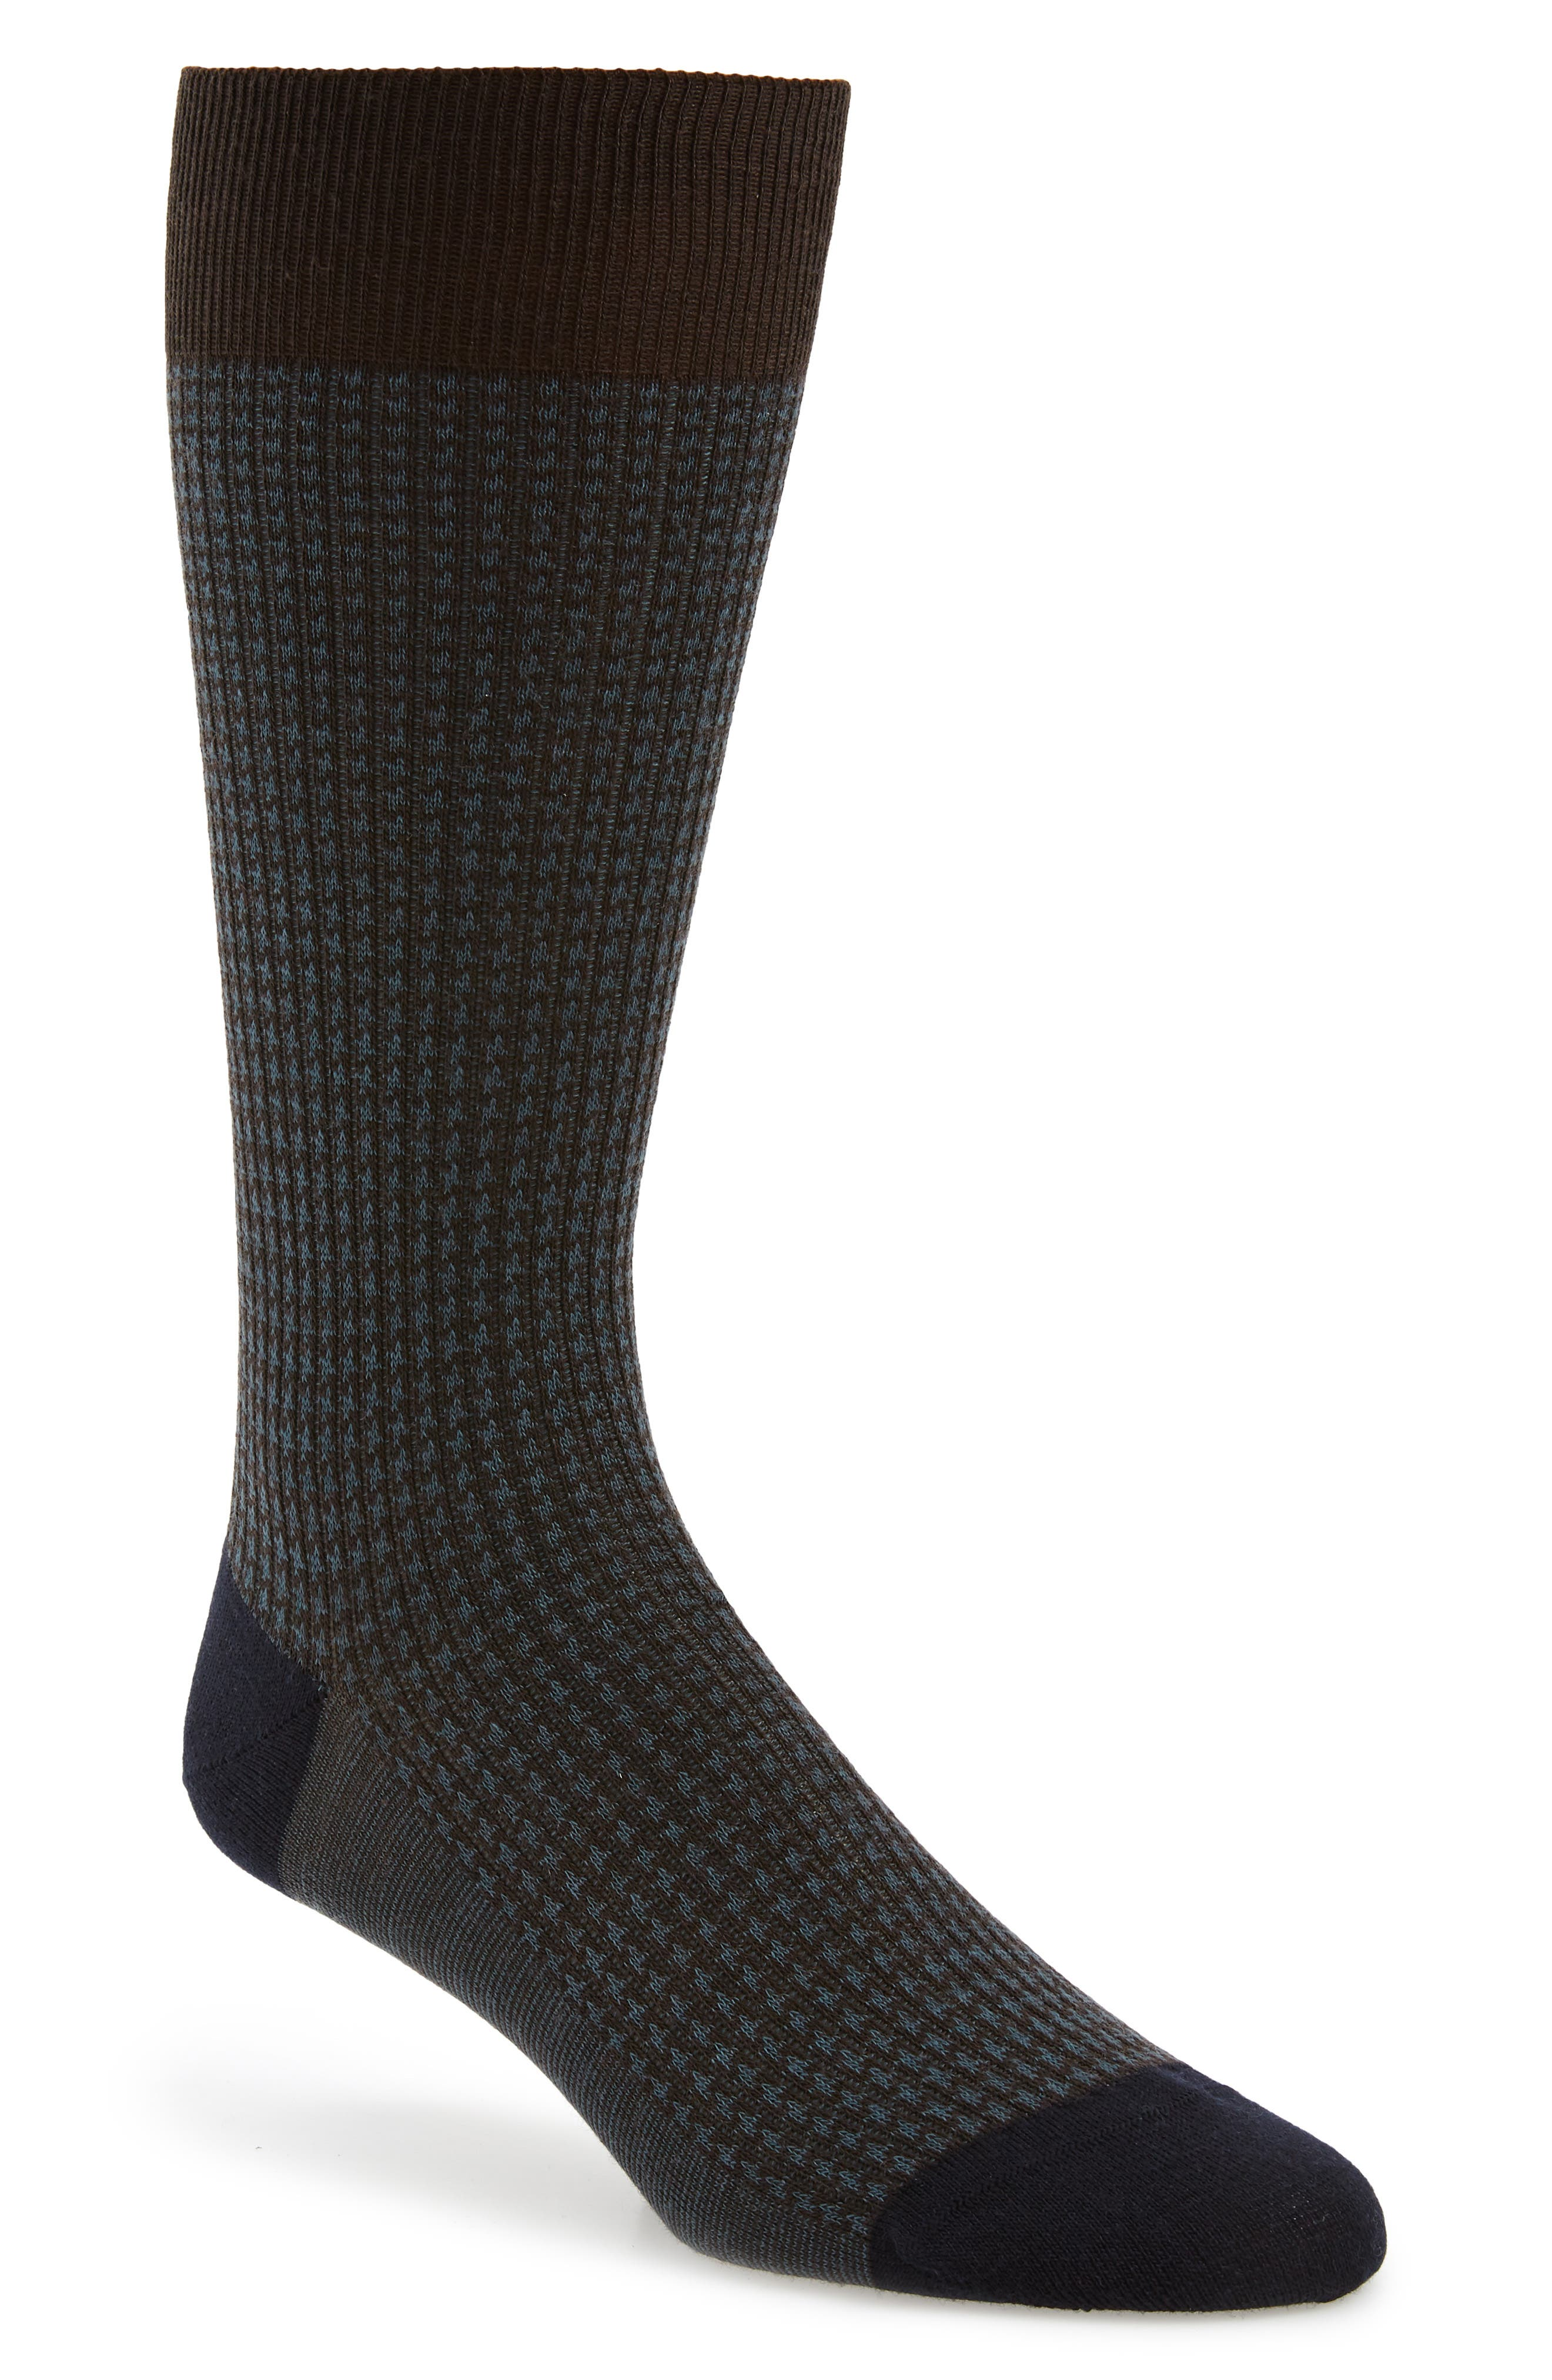 Houndstooth Wool Blend Socks,                         Main,                         color, CHOCOLATE